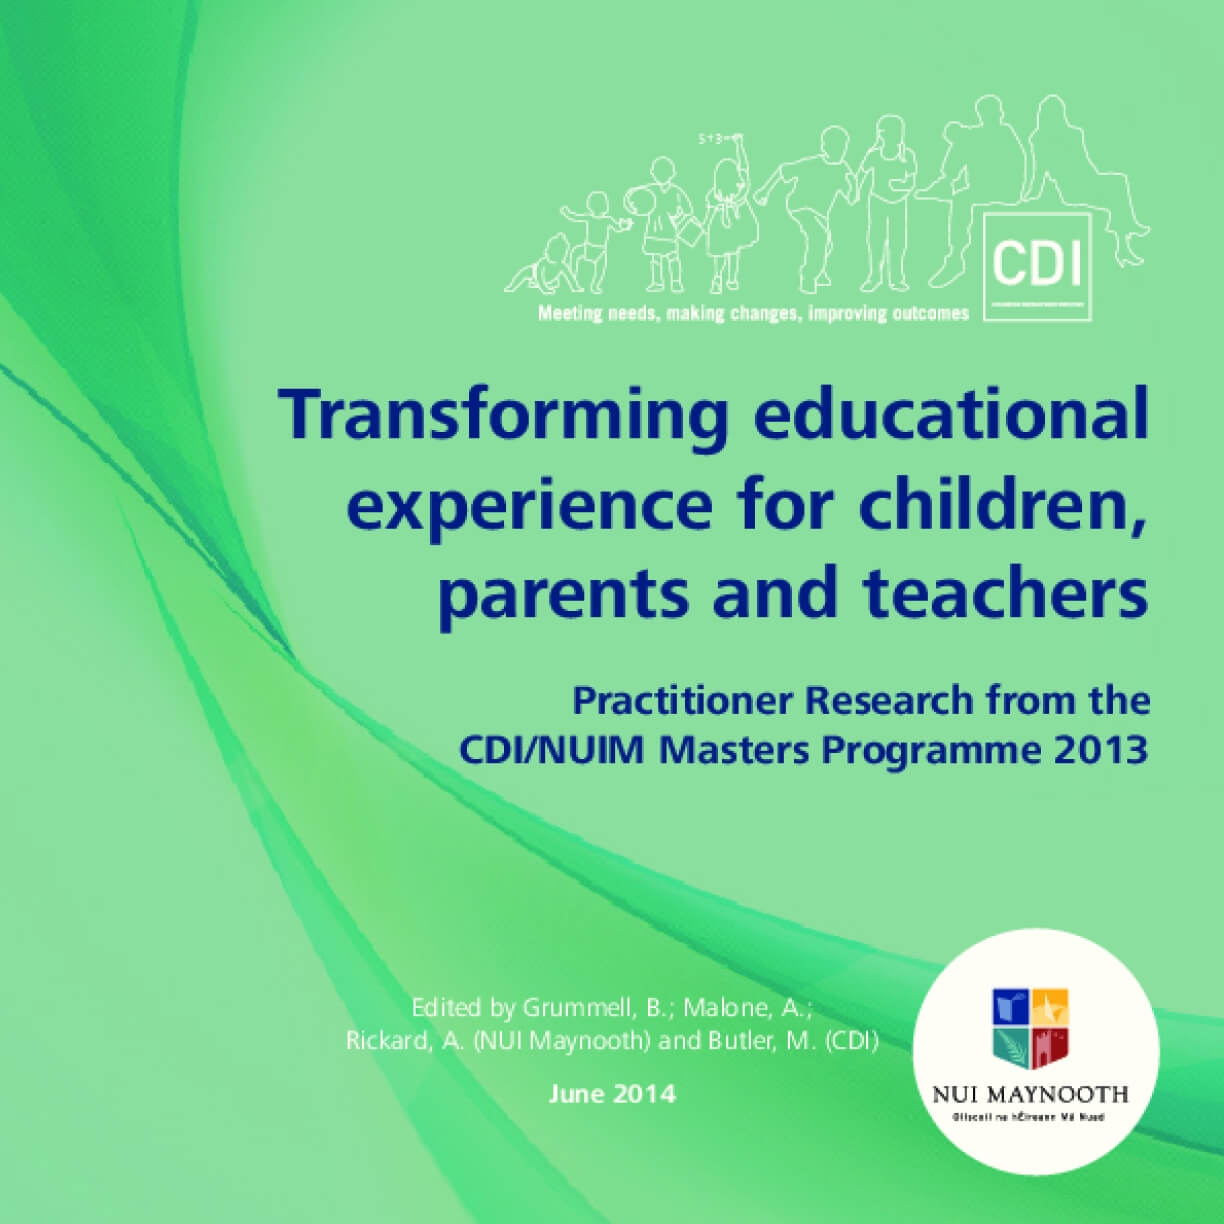 Transforming educational experience for children, parents and teachers – practitioner research from the CDI/NUIM Masters Programme 2013